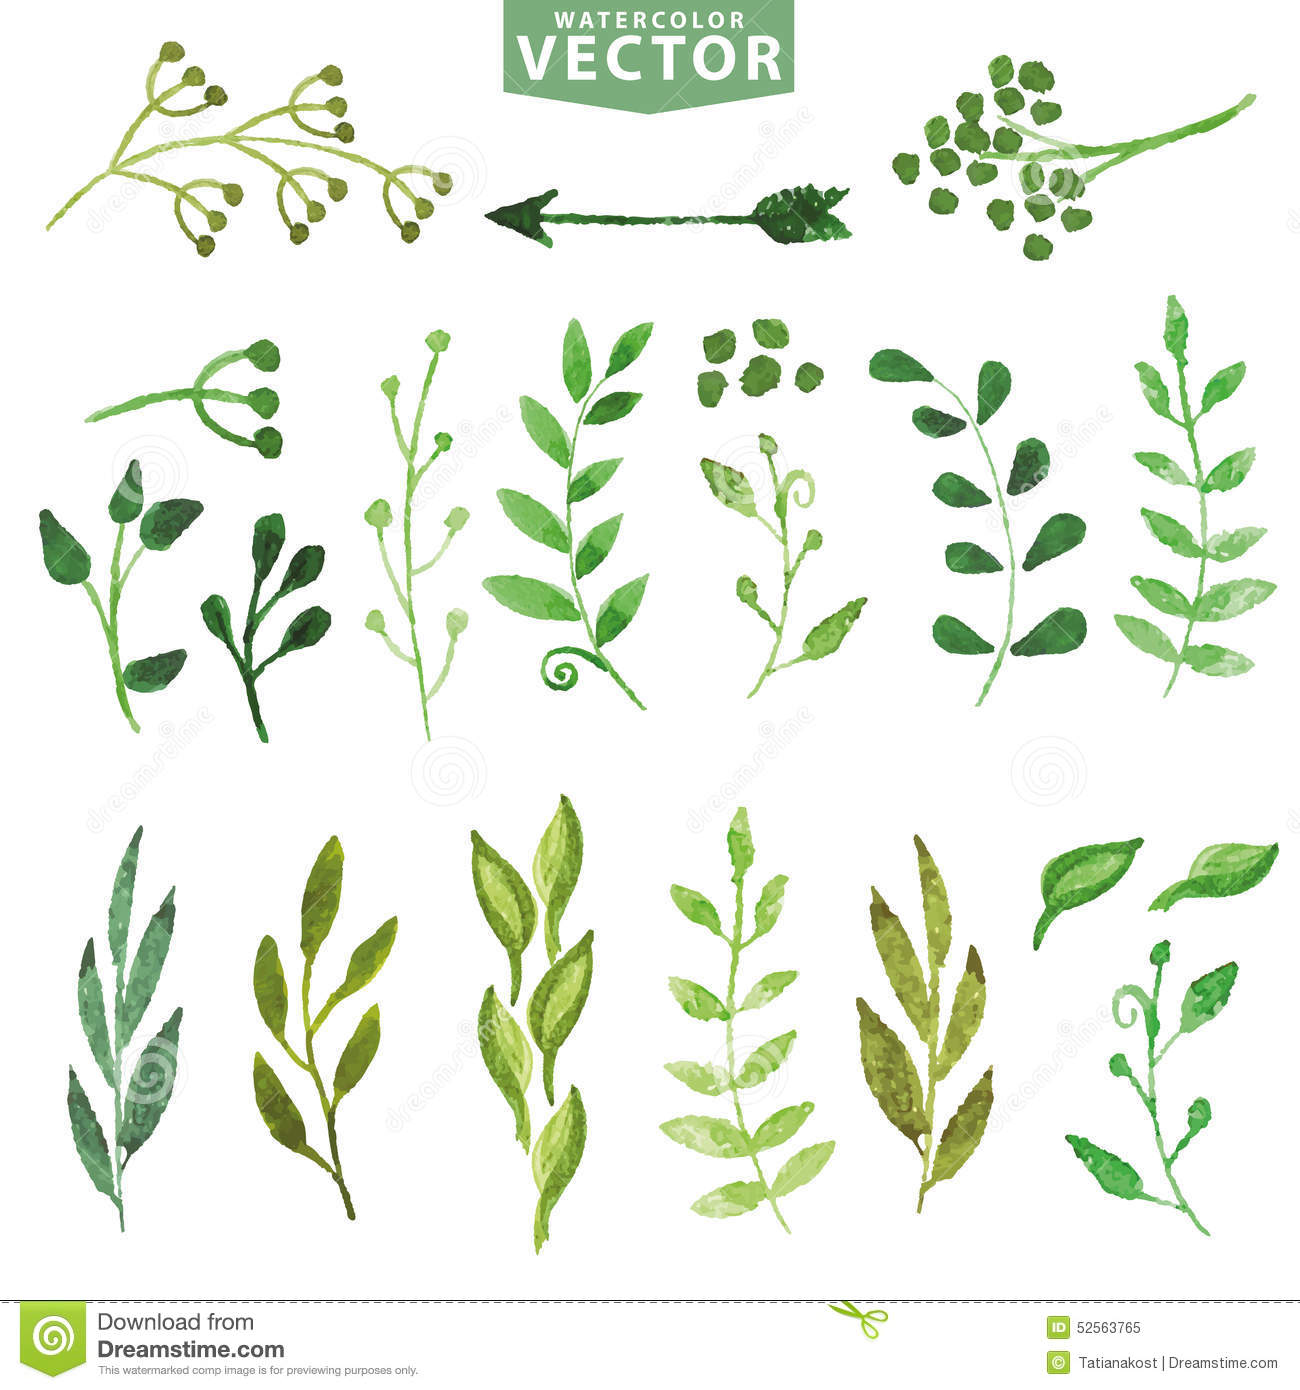 Branch clipart watercolor Green branches floral hand floral